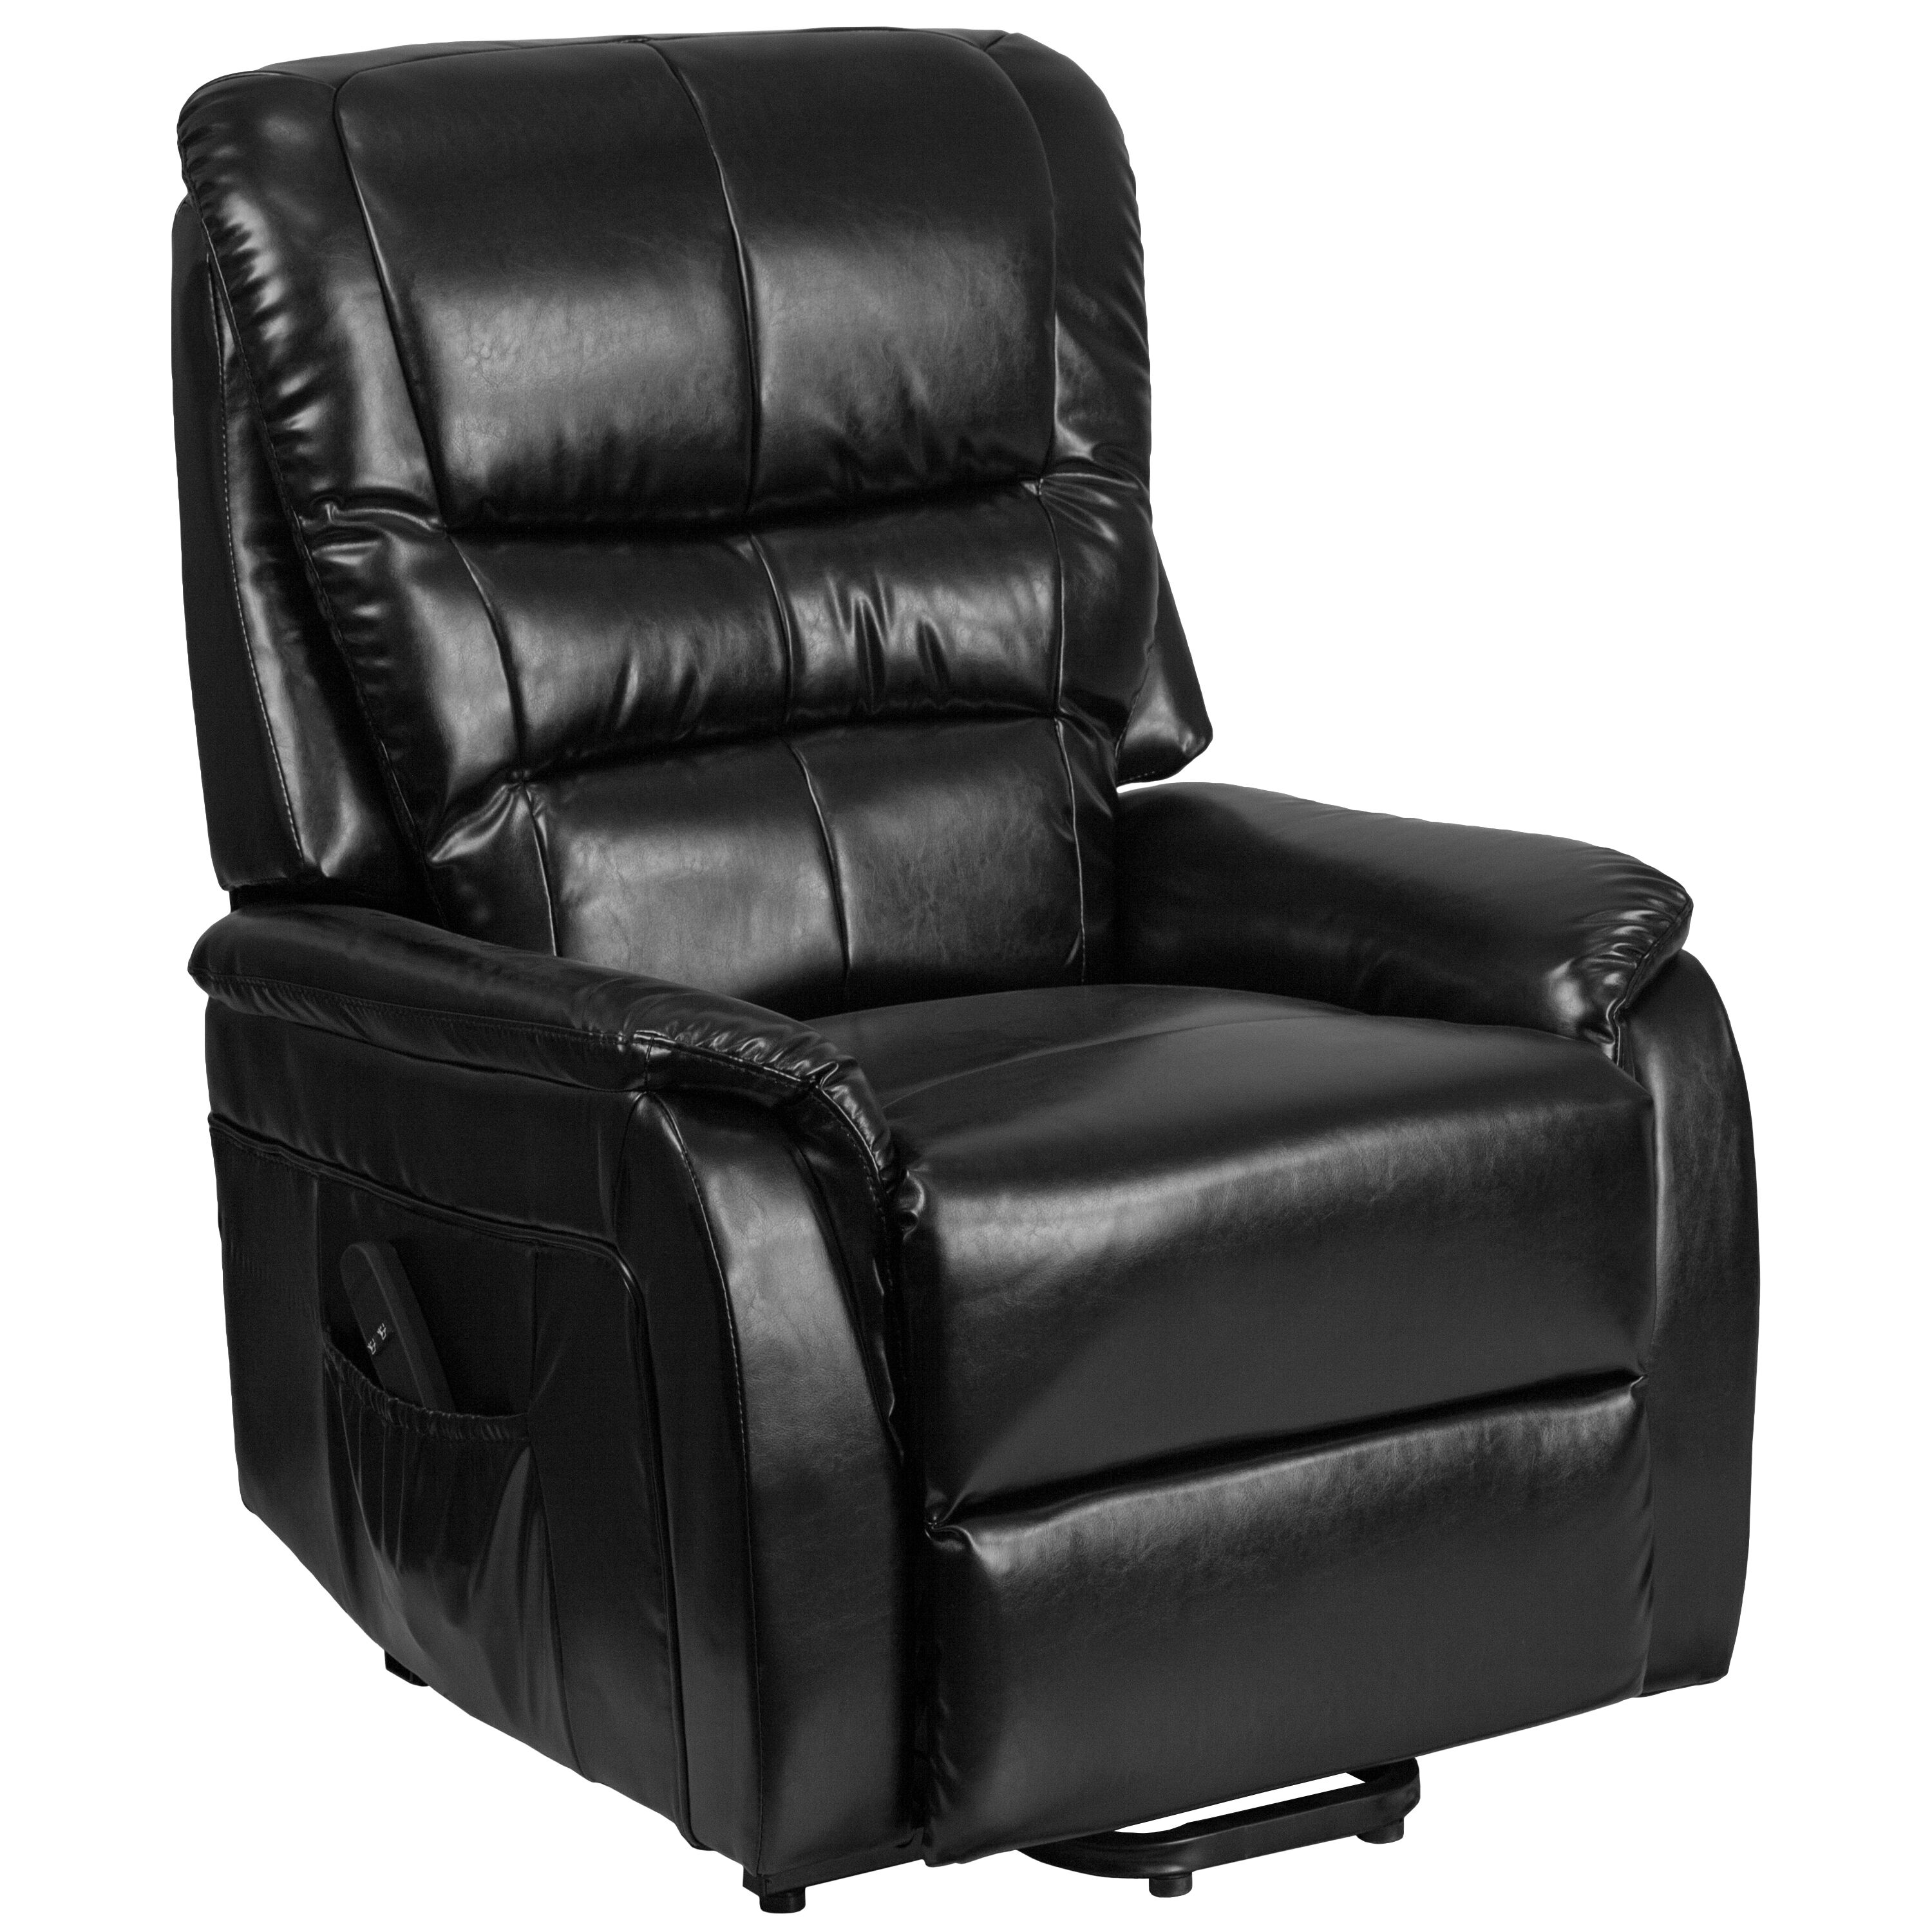 Merveilleux Our HERCULES Series Remote Powered Lift Recliner Is On Sale Now.